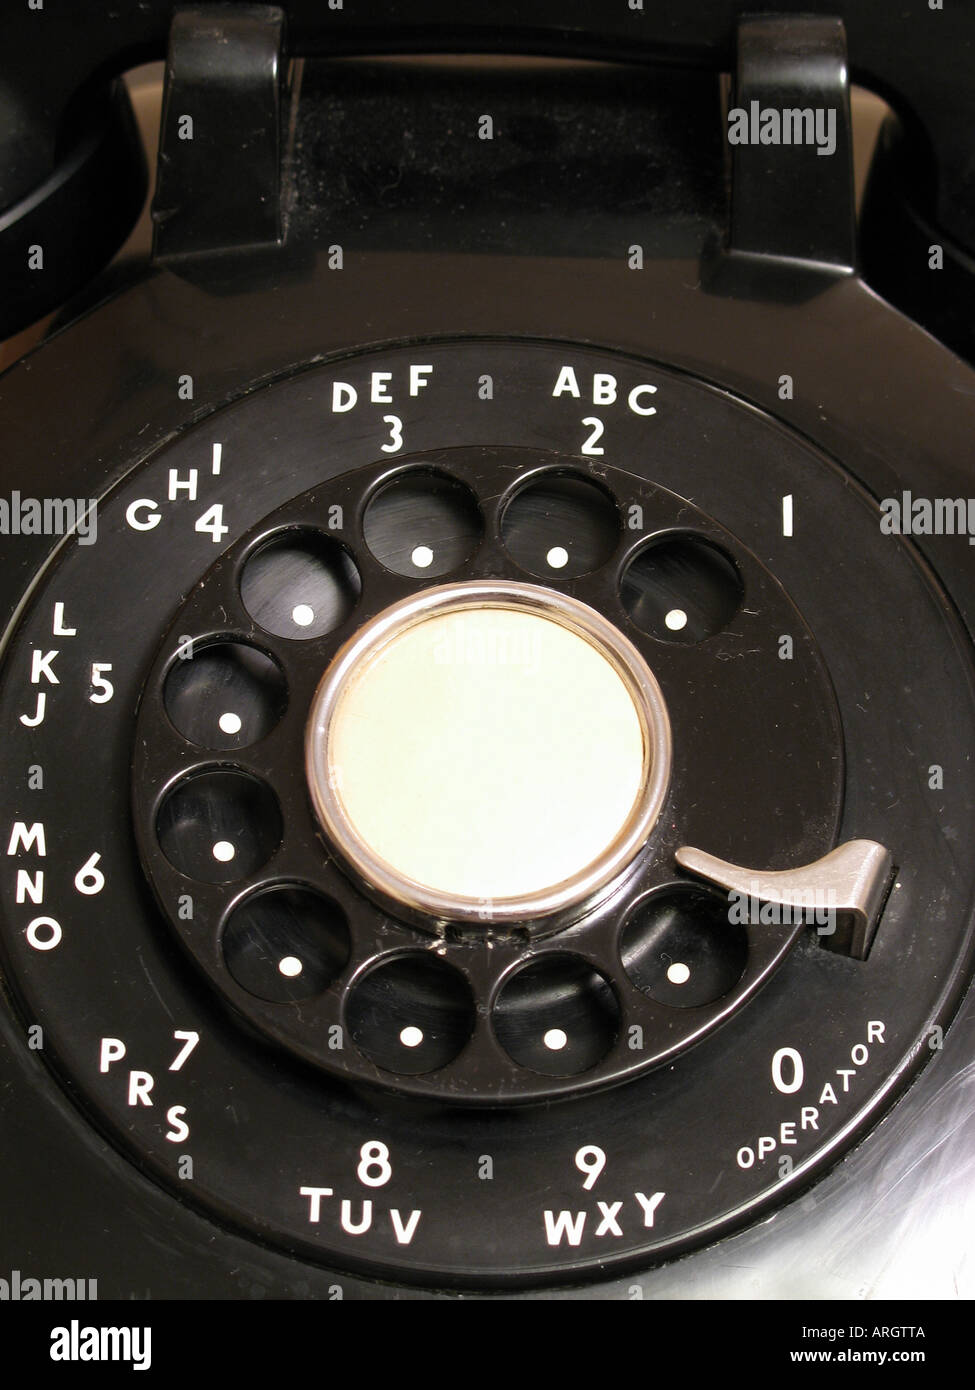 Rotary Telephone Dial - Stock Image